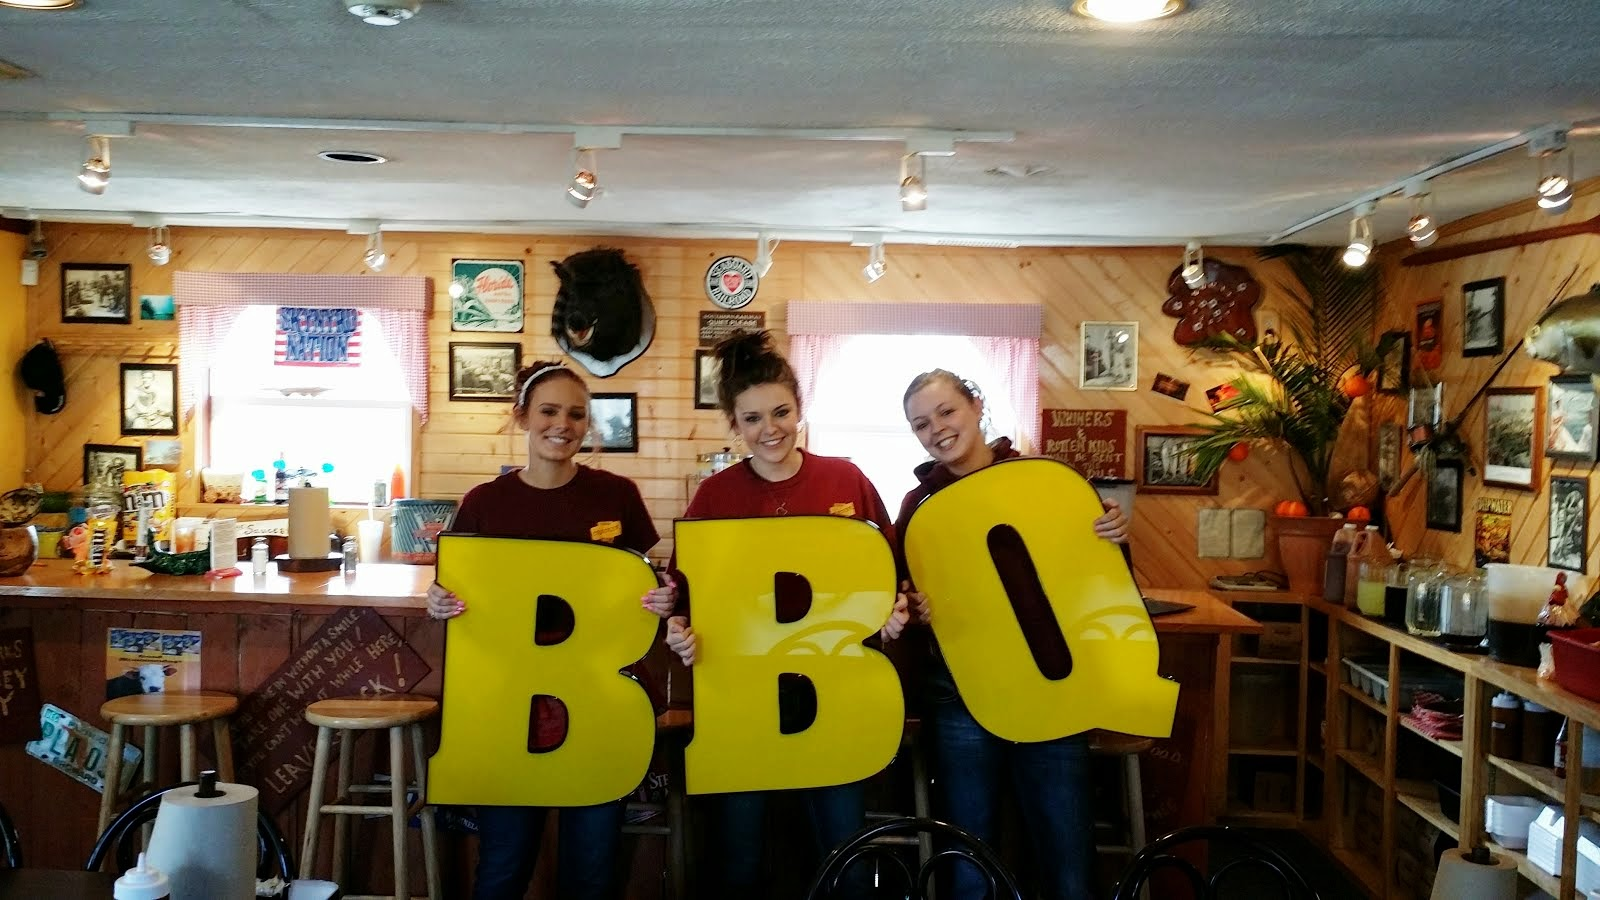 Welcome to the Florida Cracker Bar-B-Que